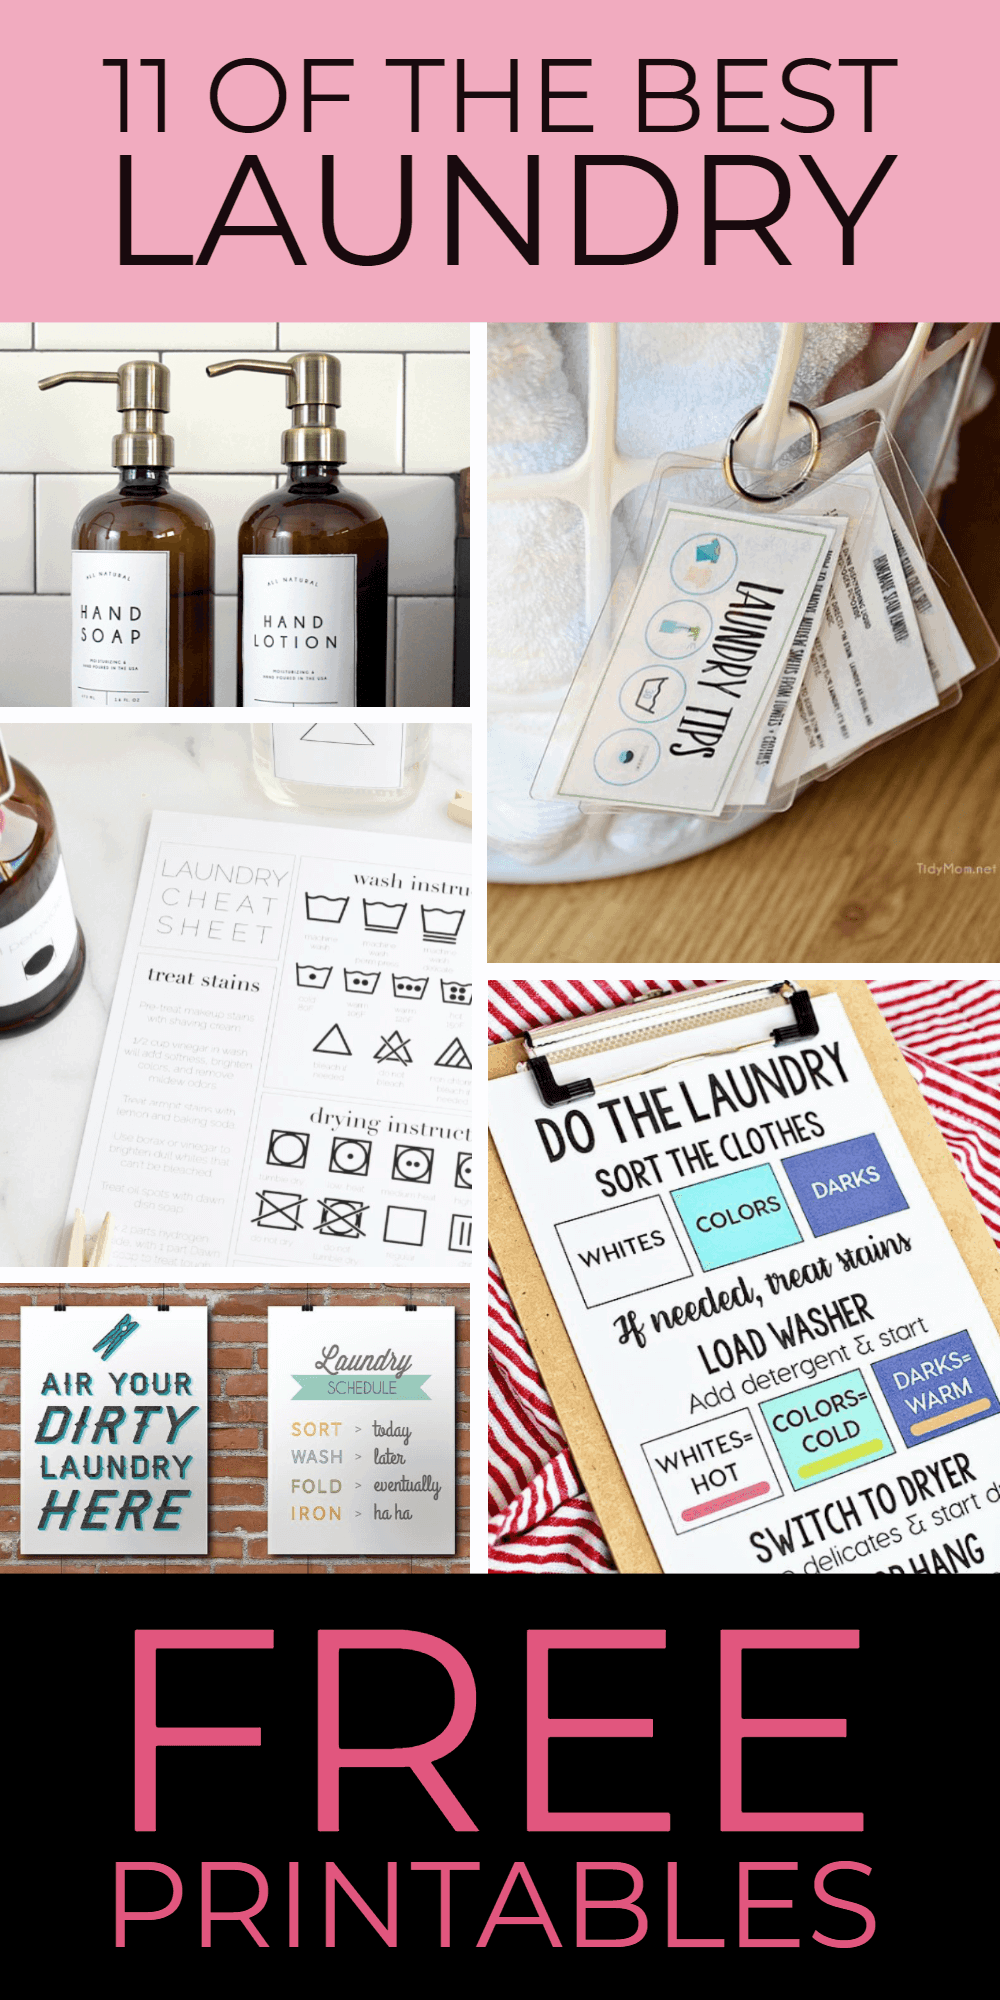 11 of the best laundry printables